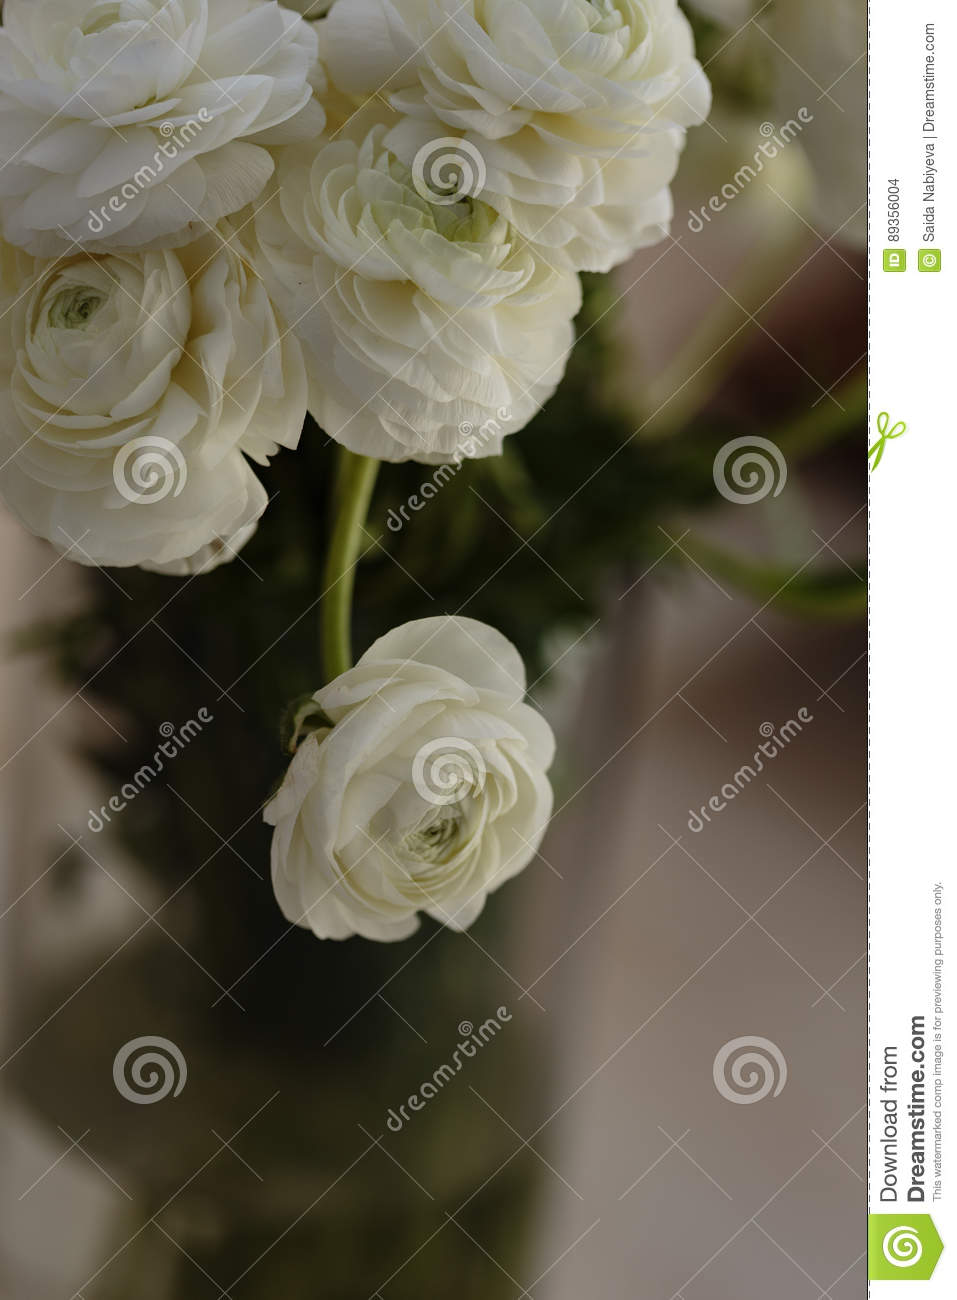 White ranunculus flower in glass vase stock photo image of download white ranunculus flower in glass vase stock photo image of beautiful anniversary mightylinksfo